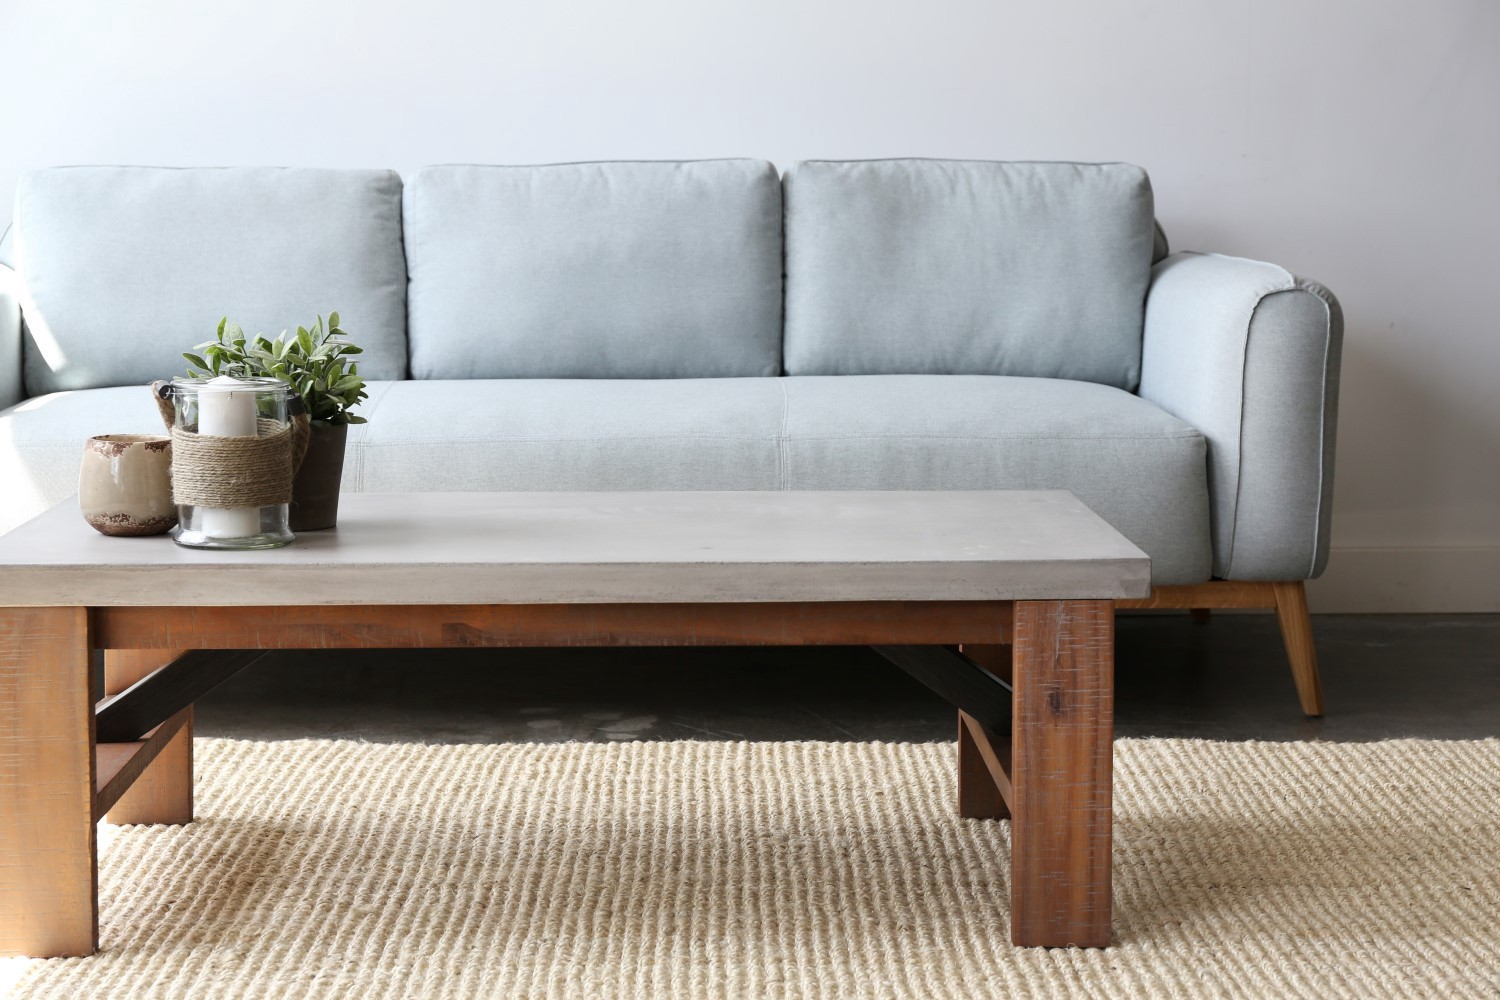 Picture of: 7 Main Coffee Table Styles A Coffee Table Is A Long Low Table By Anna Samygina Basics Of Interior Design Medium